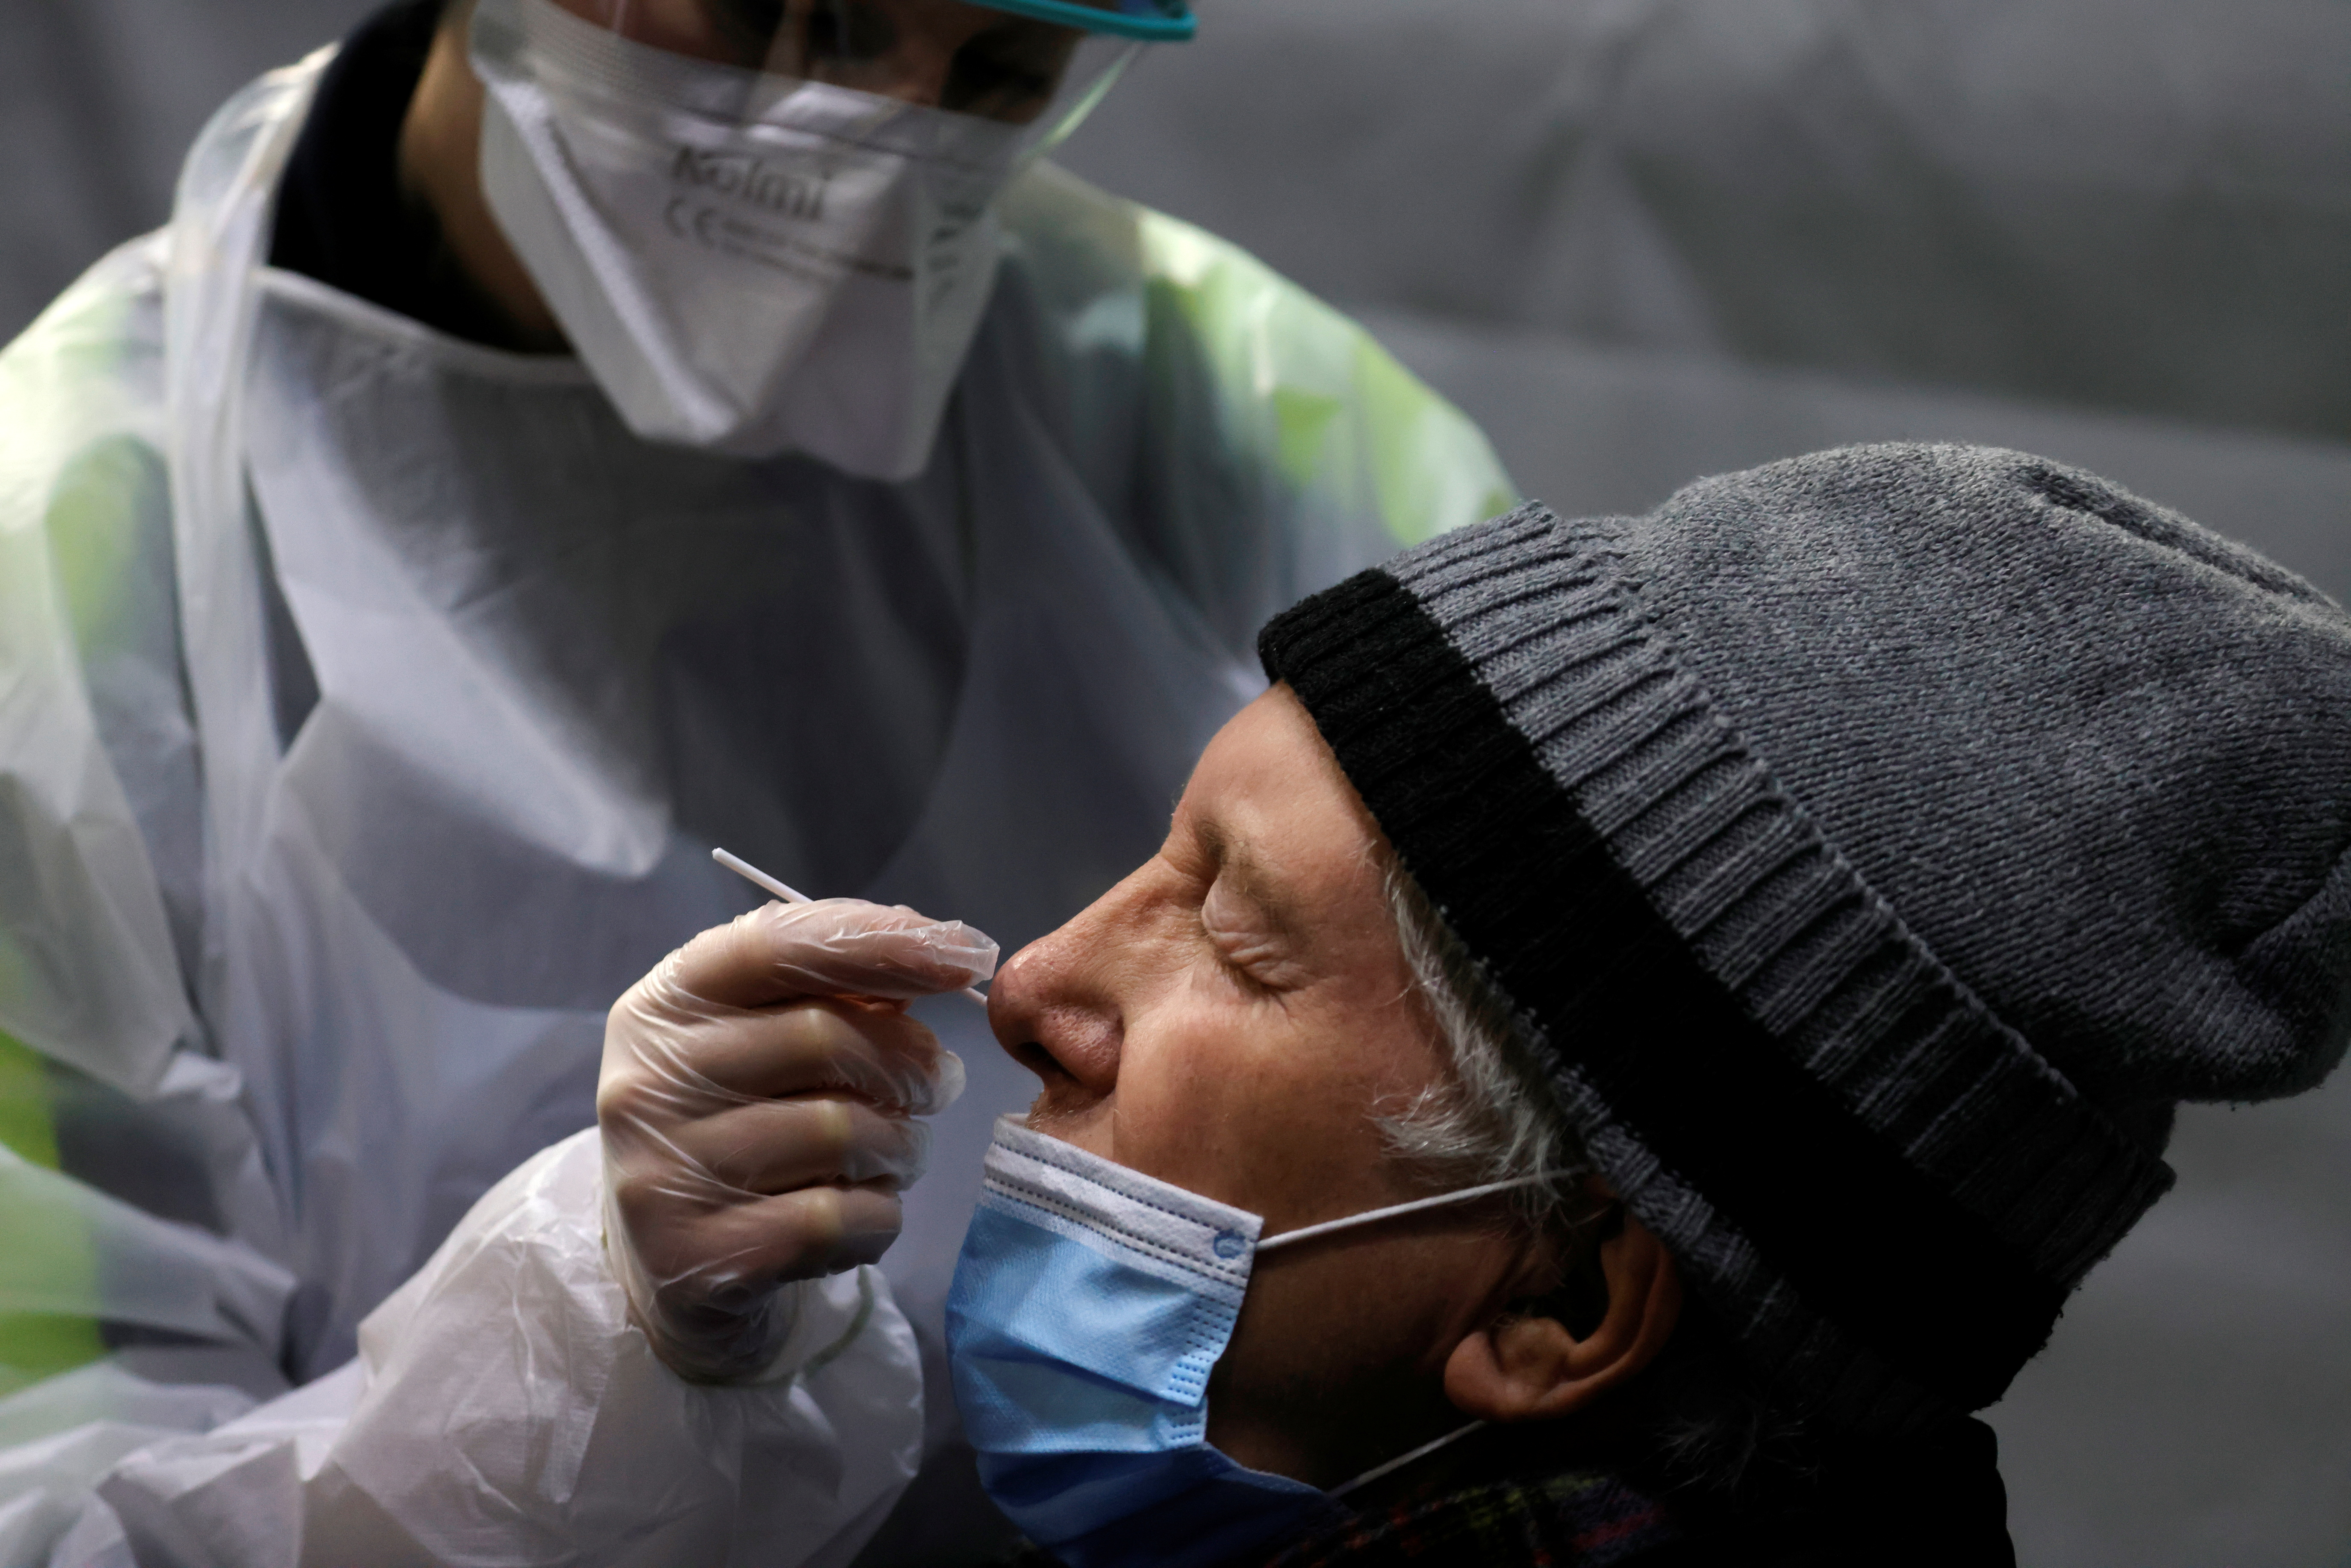 A medical worker administers a nasal swab to a patient at a coronavirus disease (COVID-19) testing center installed inside in the Kursaal concert hall in Dunkirk, France, February 18, 2021. REUTERS/Pascal Rossignol/File Photo